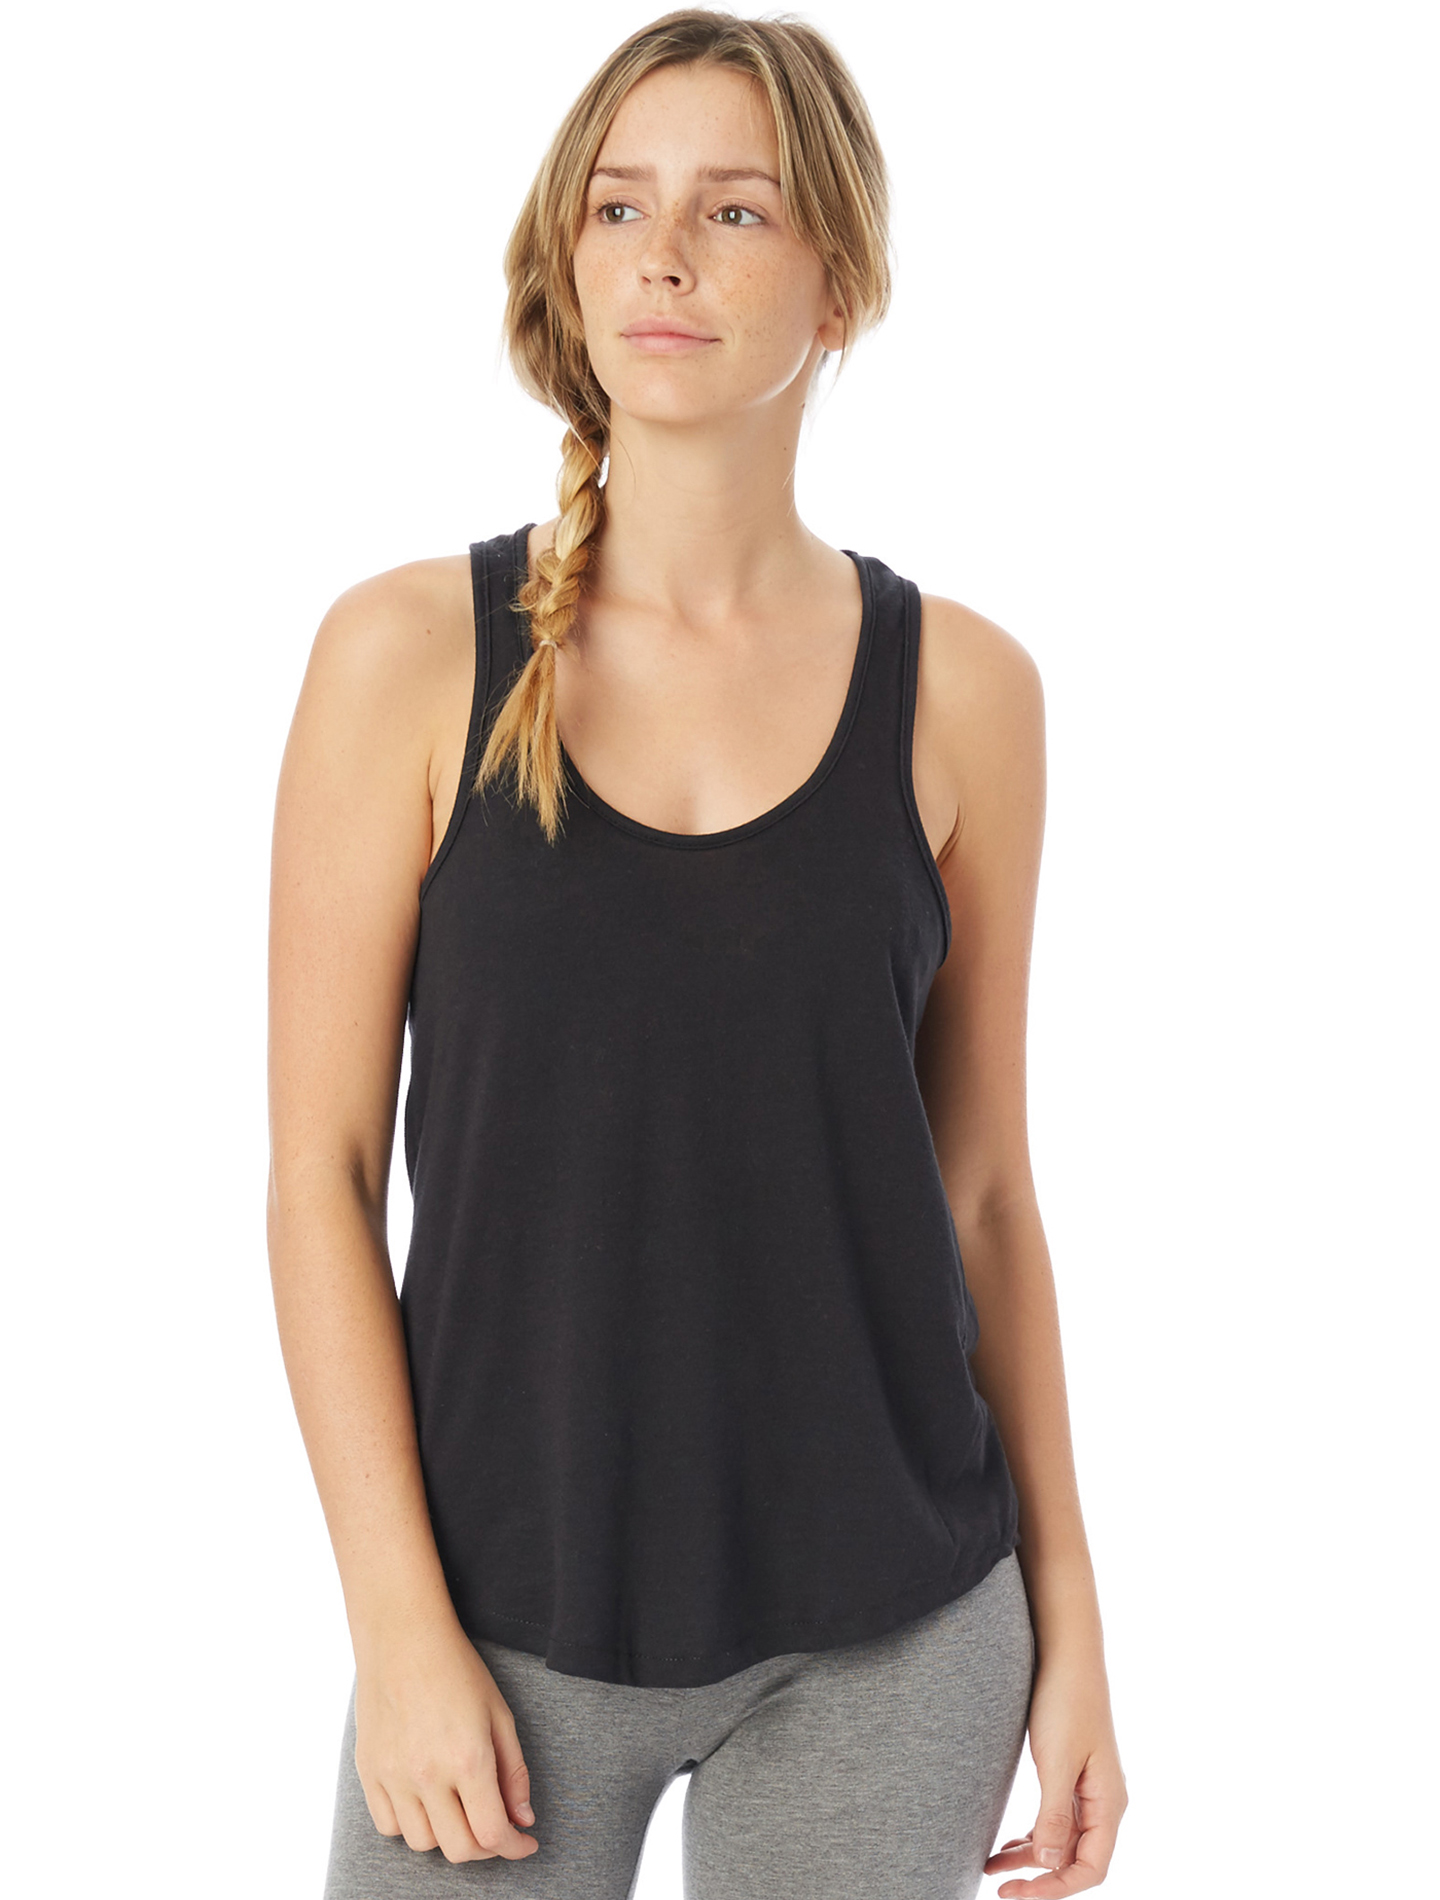 Its the kind of tank that feels like youve lived in itright from the first wear. A loose fit, high-low hem, and lower scoop neckline give a flattering shape, while the soft 50/50 fabric keeps it comfortable.